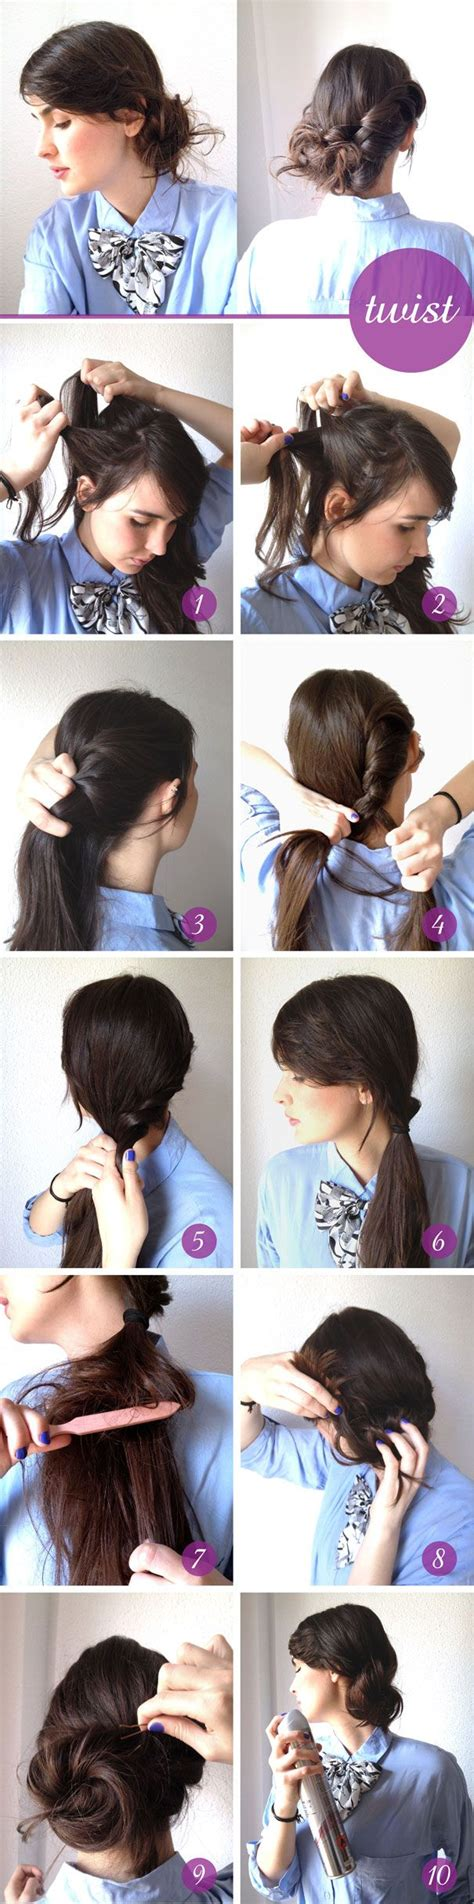 hairstyles for party tutorials new party hairstyle tutorials for girls in 2018 fashioneven